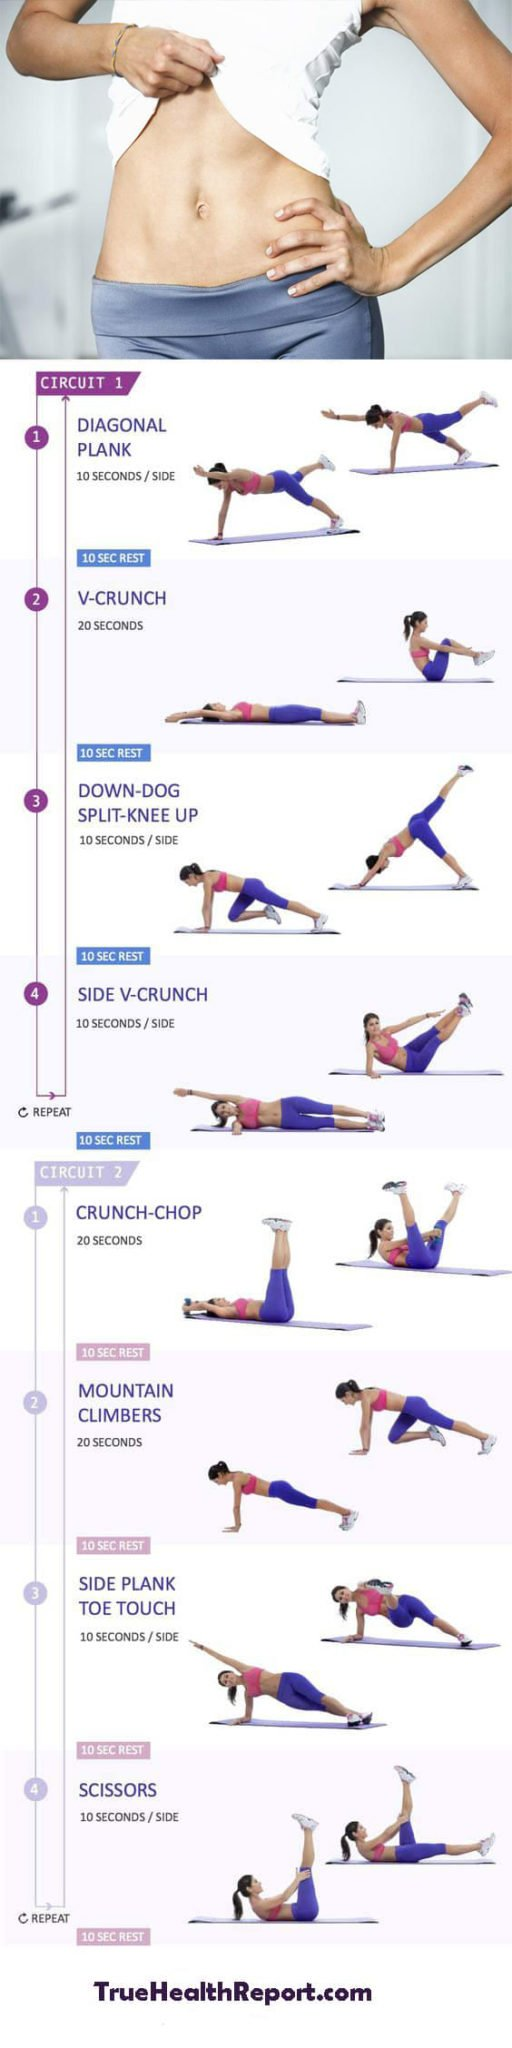 10 minute bikini abs flat belly workout guide